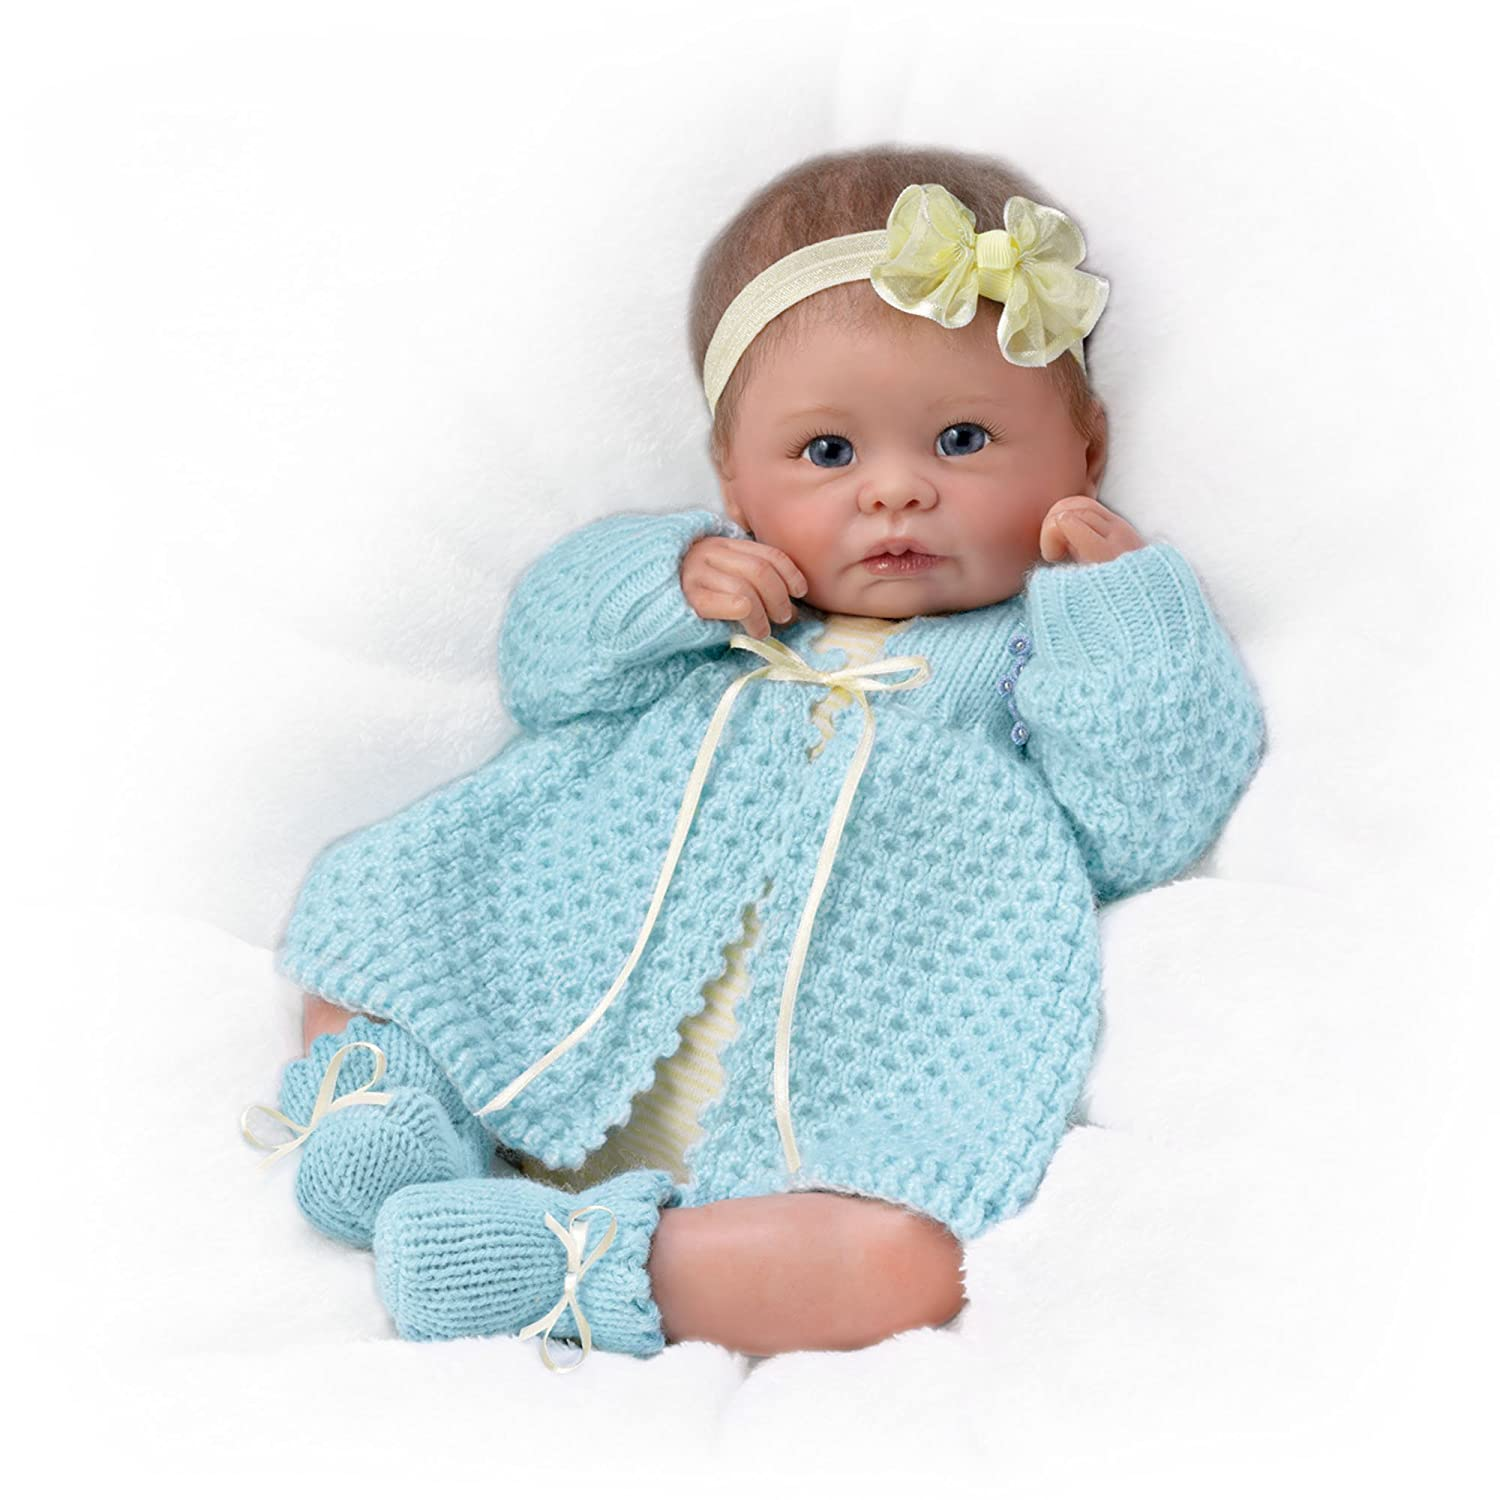 Ashton Drake 'Sweetly Snuggled' - Poseable Weighted Lifelike Baby Doll by Linda Murray - RealTouch Vinyl Skin The Ashton Drake Galleries